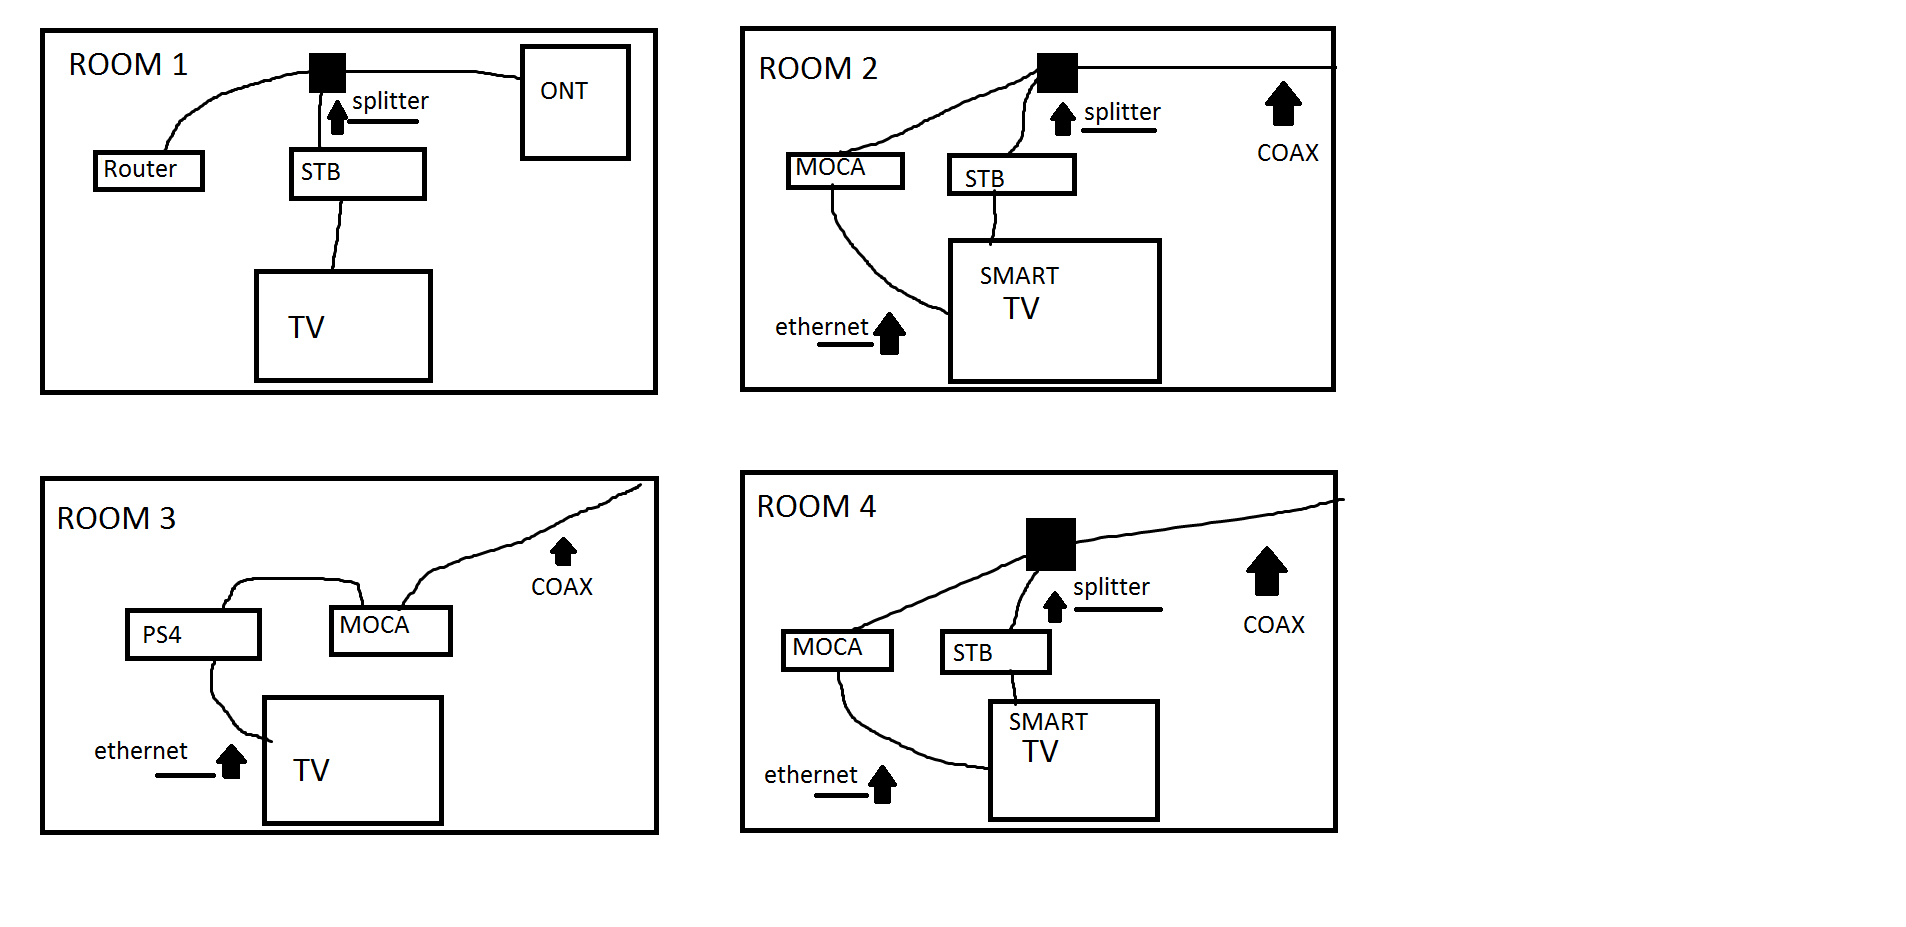 Fios Tv Wiring Diagram Libraries Vcr Todaysfios Guide Completed Diagrams With Wireless Router